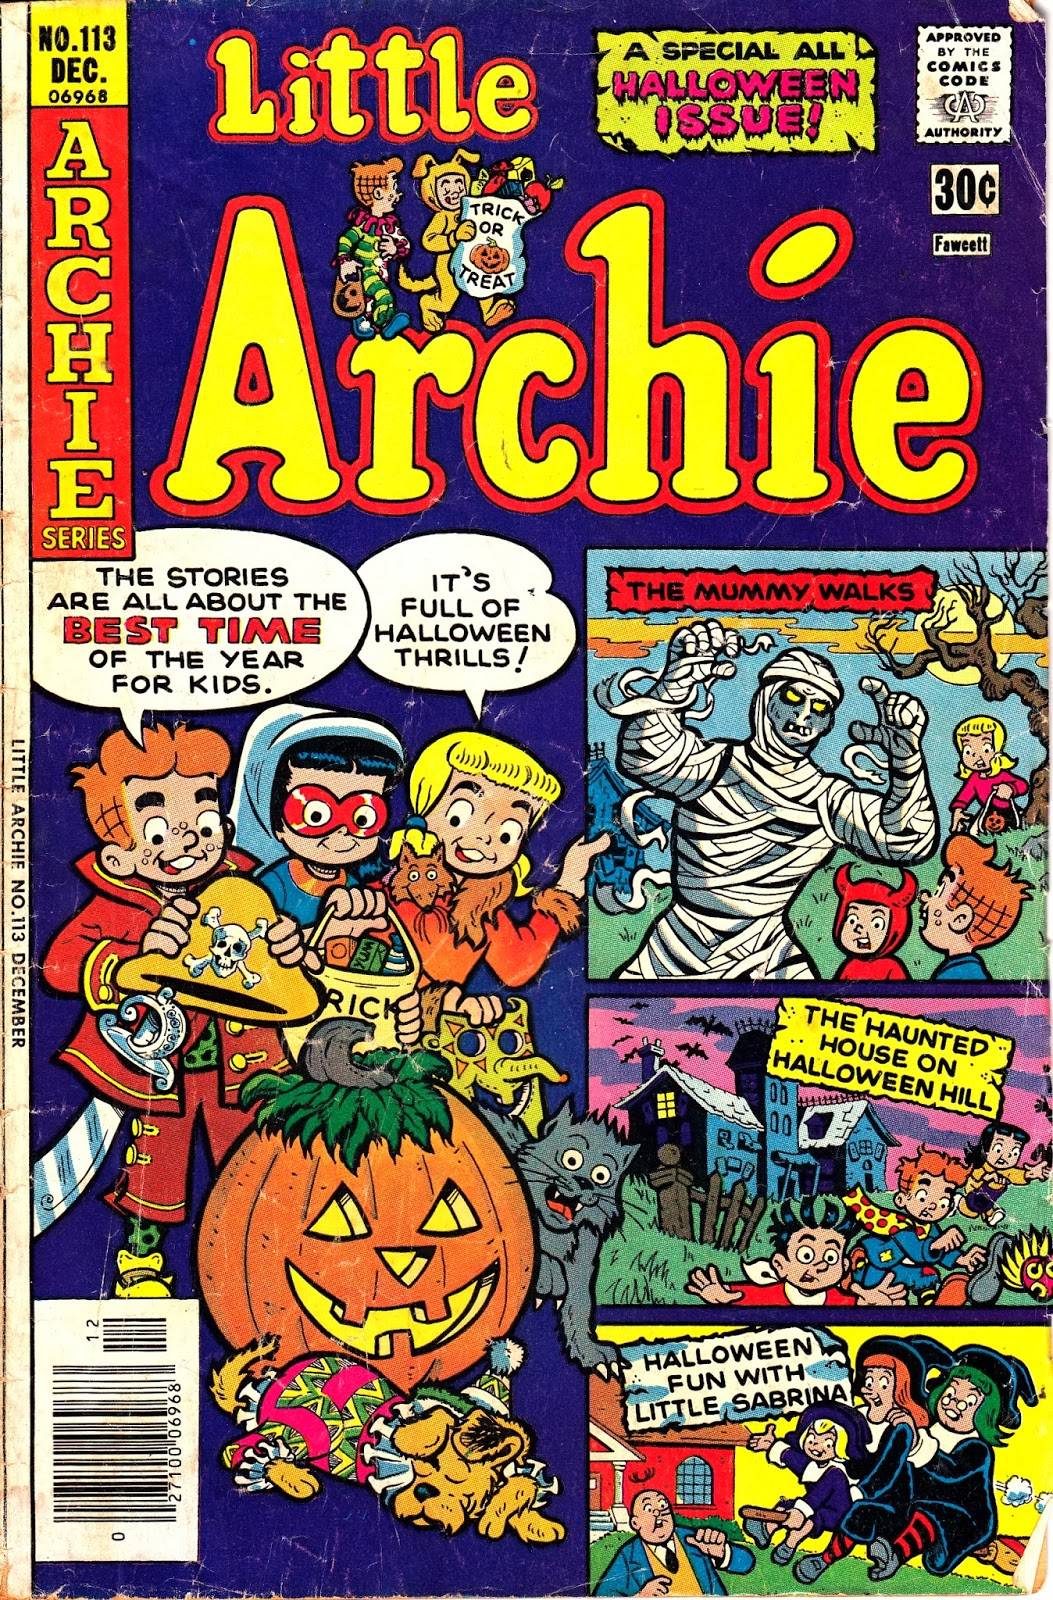 Mixed Up Monster Club Little Archie A Special All